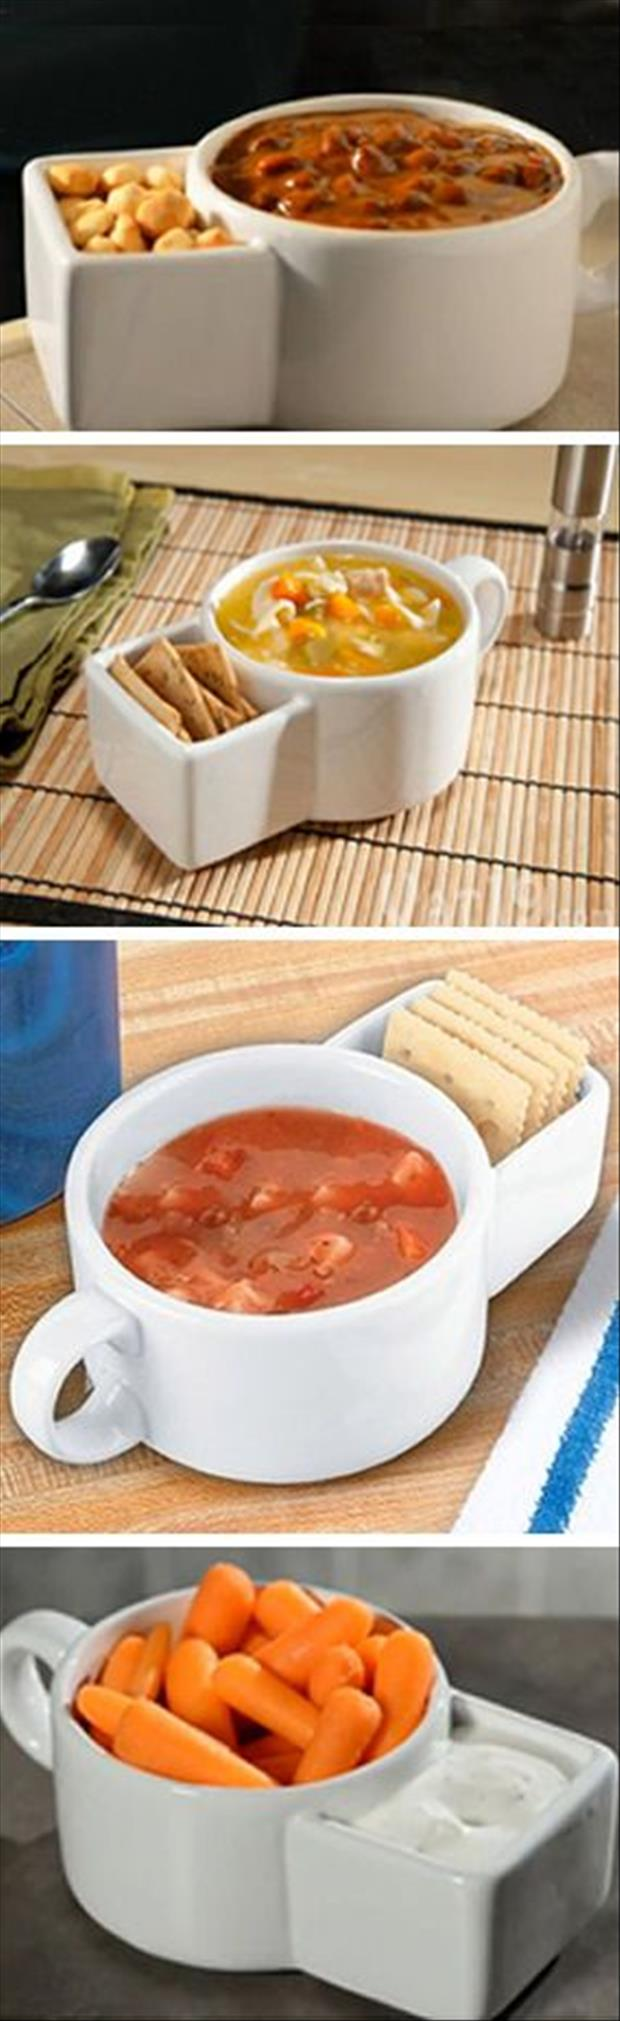 soup and cracker bowl